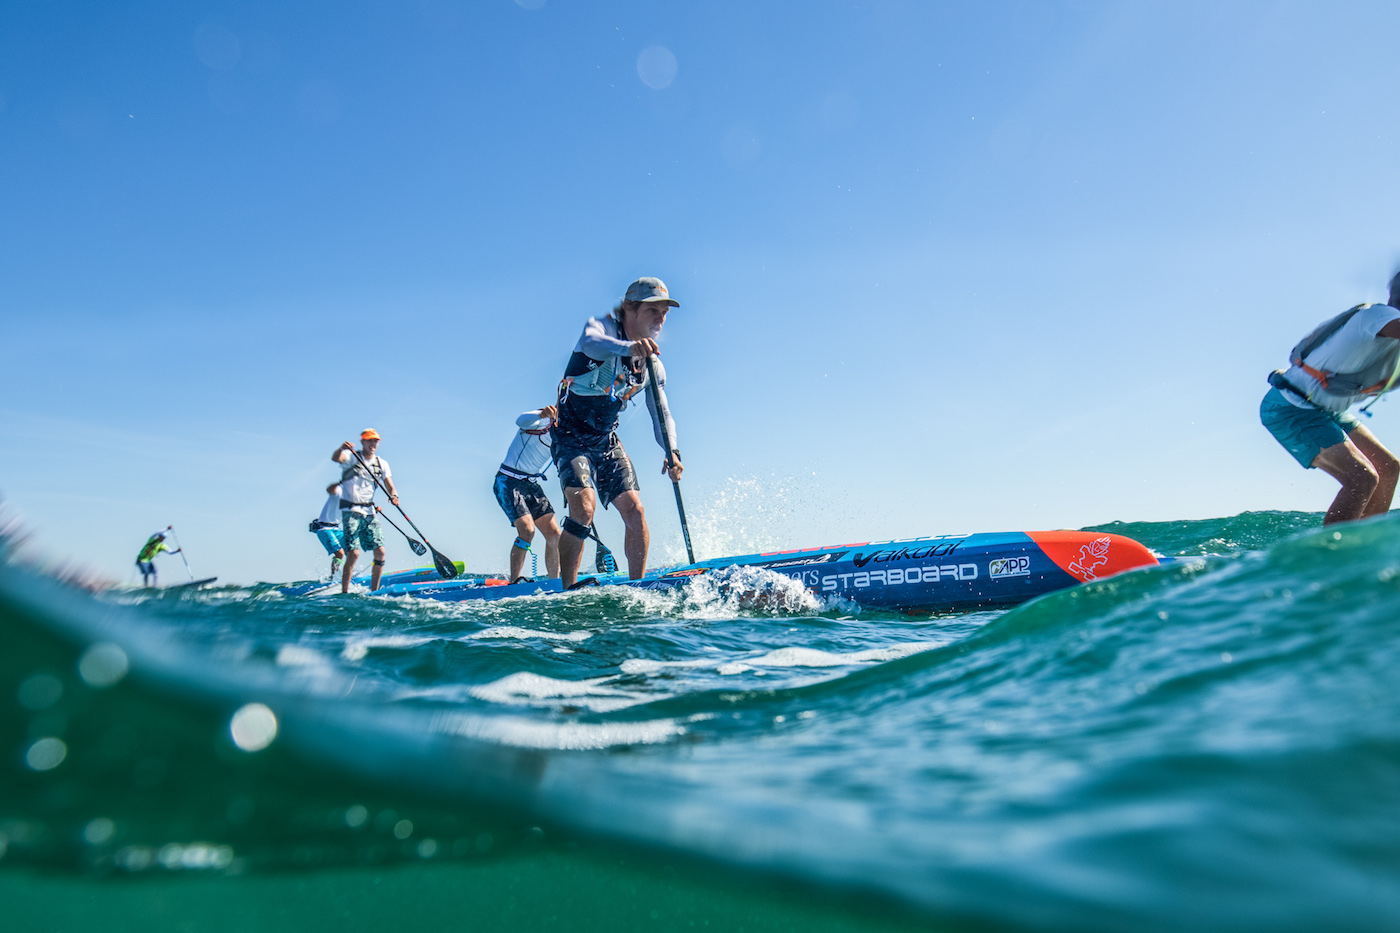 Worlds-Best-SUP-Athletes-Battle-for-Carolina-Cup-Titles-this-Weekend-Michael-Booth-by-Georgia-Schofield-Starboard-SUP